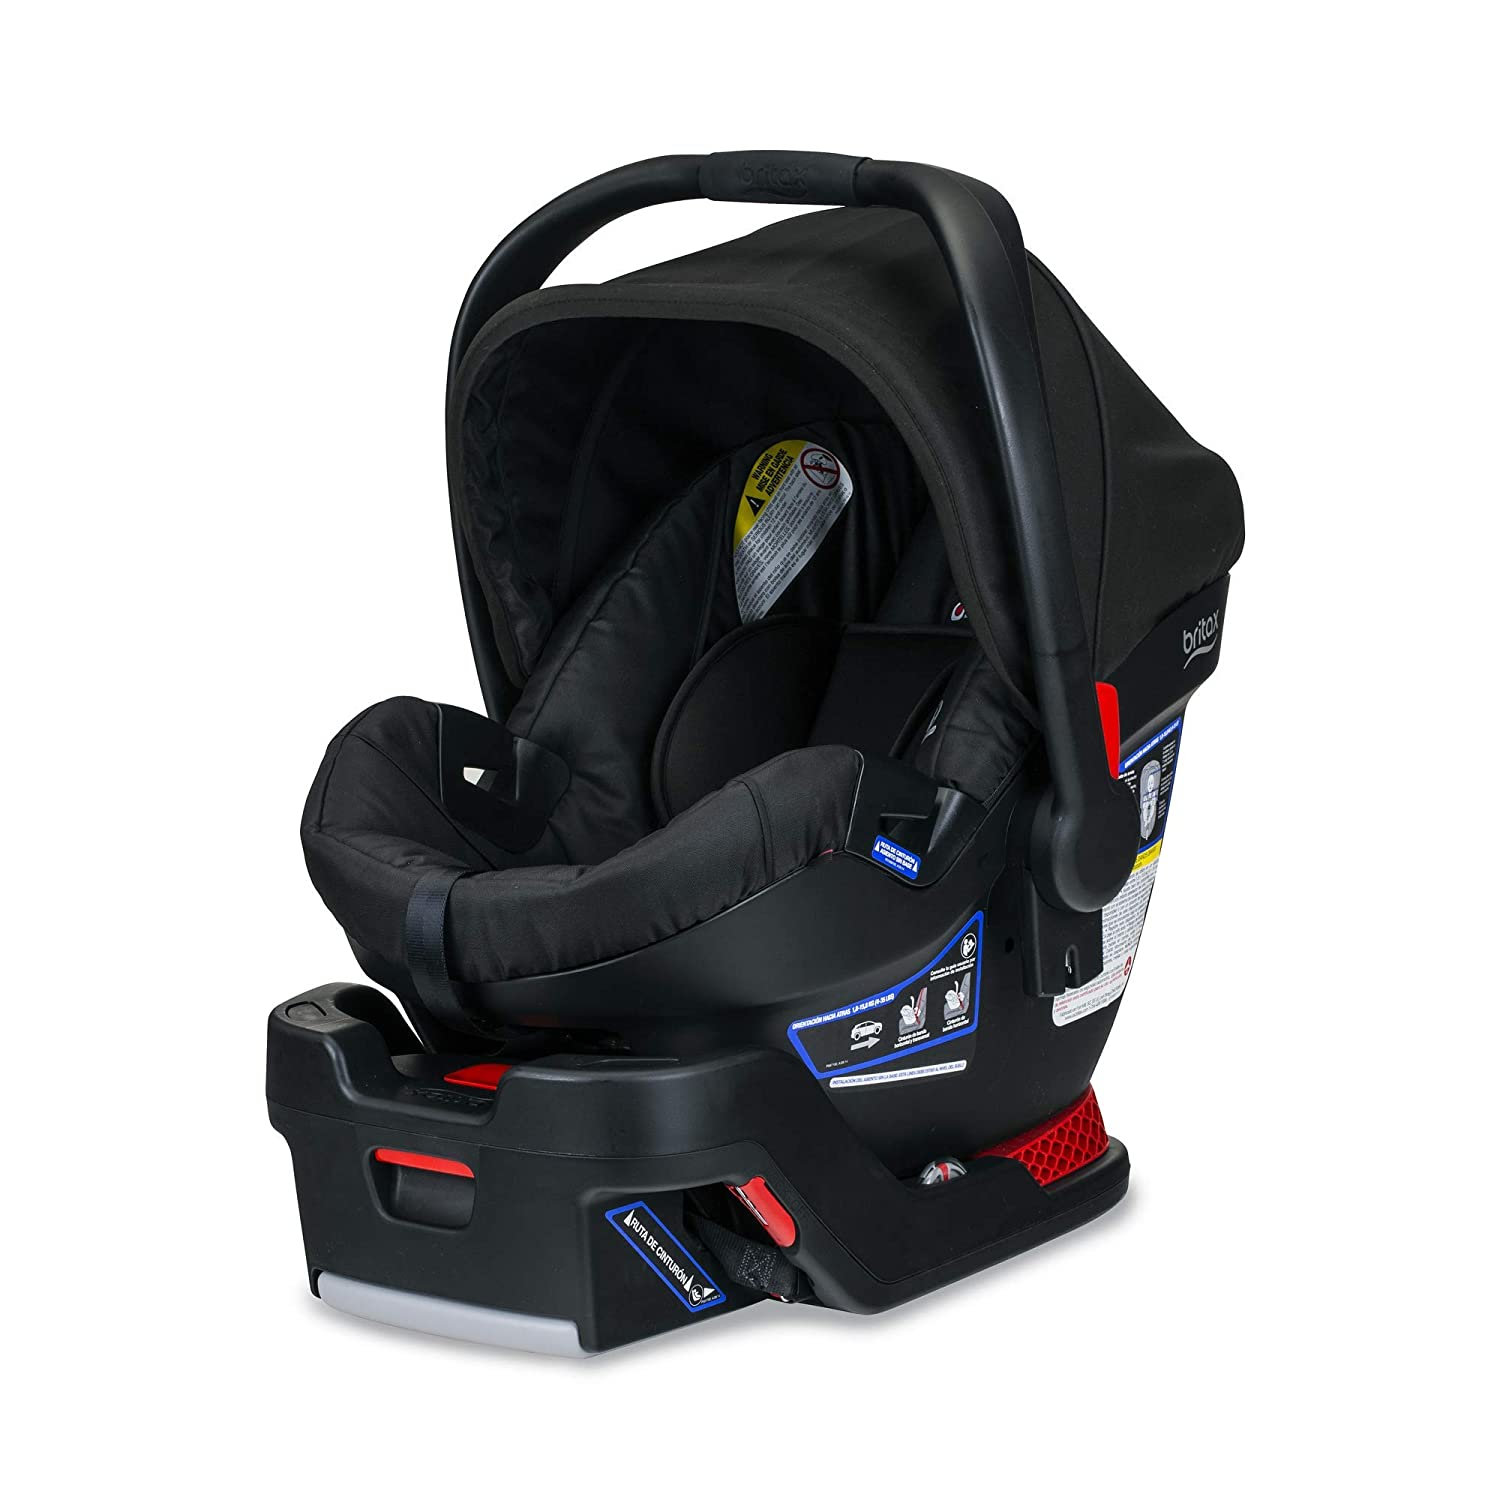 ed6812b78a29 Amazon.com   Britax B-Safe 35 Infant Car Seat